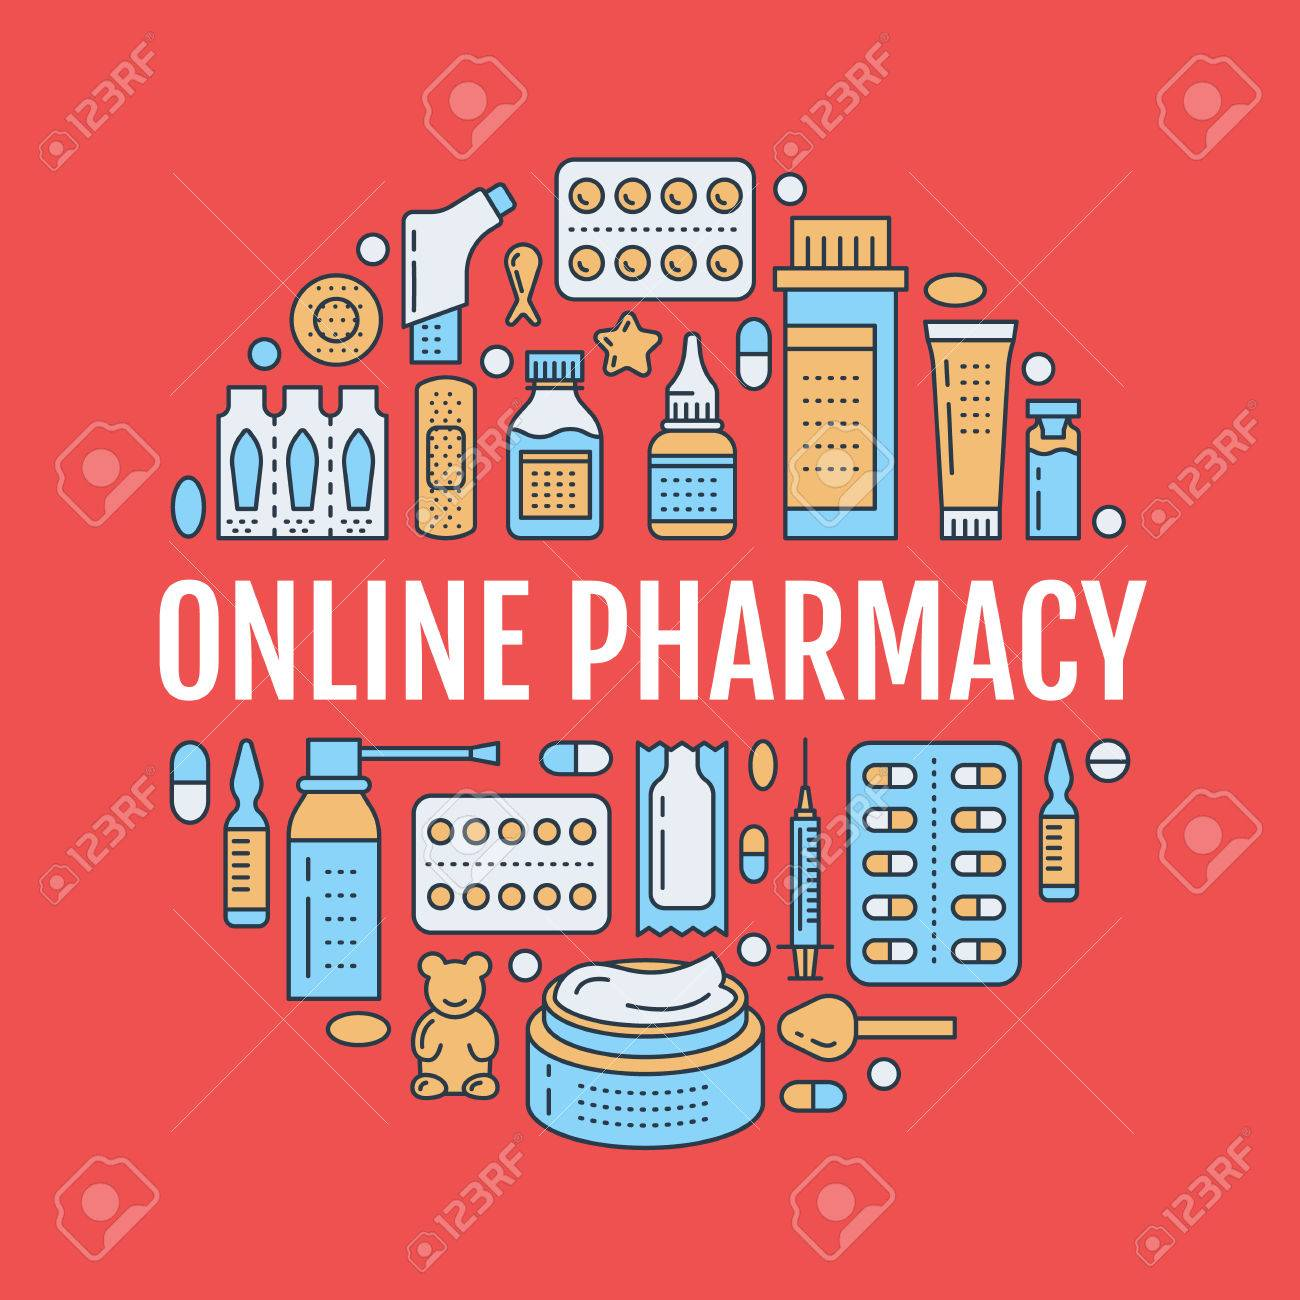 Medical, drugstore poster template. Vector medicament line icons, illustration of dosage forms - tablet, capsules, pills. Medicines antibiotics, vitamins. Healthcare banner with text online pharmacy. - 76779565